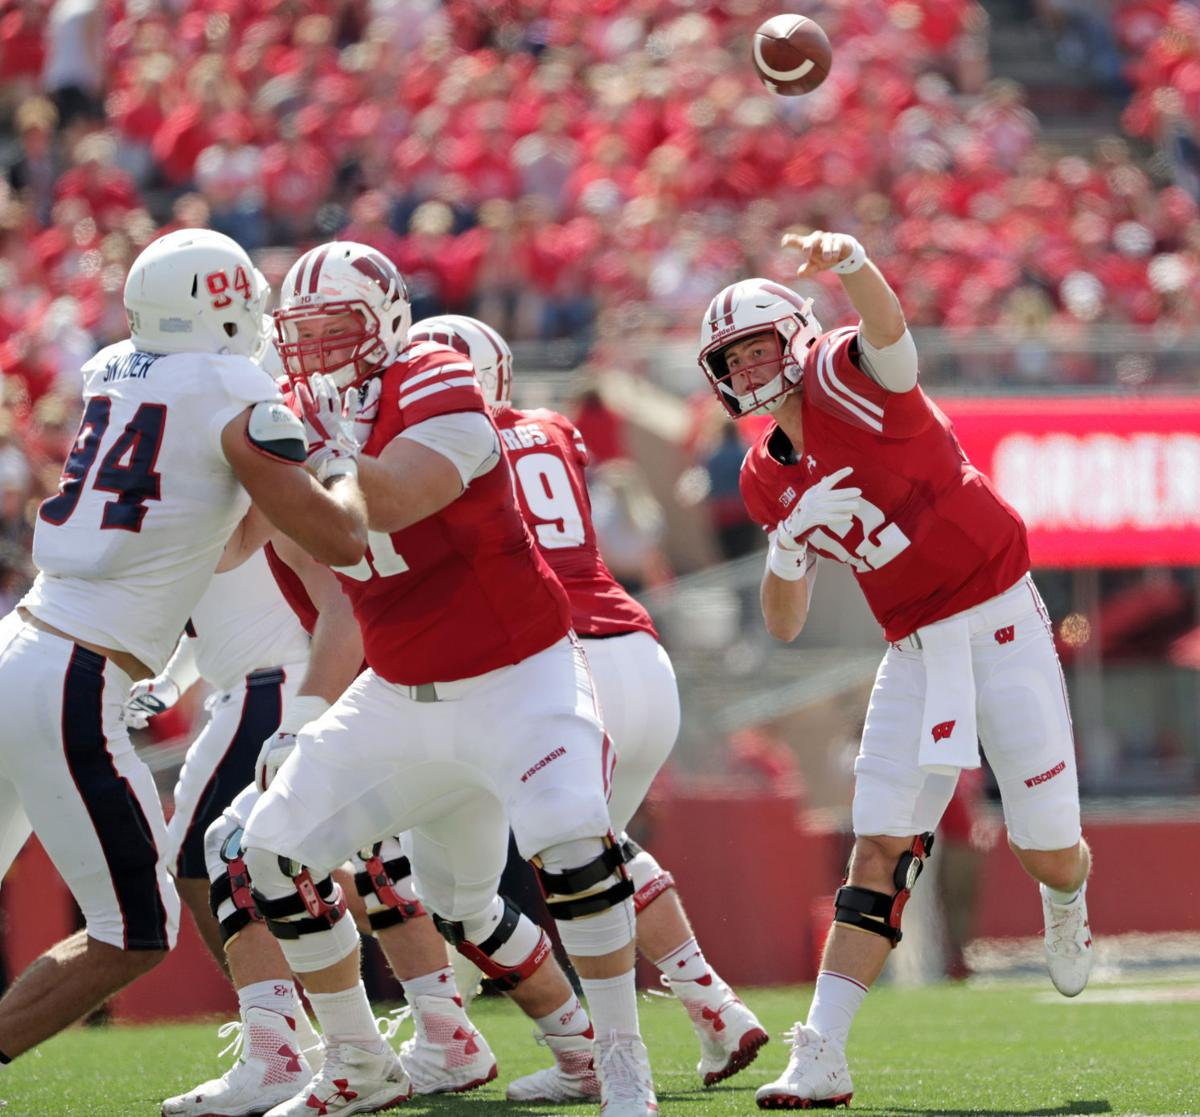 Hornibrook-byu test for offense